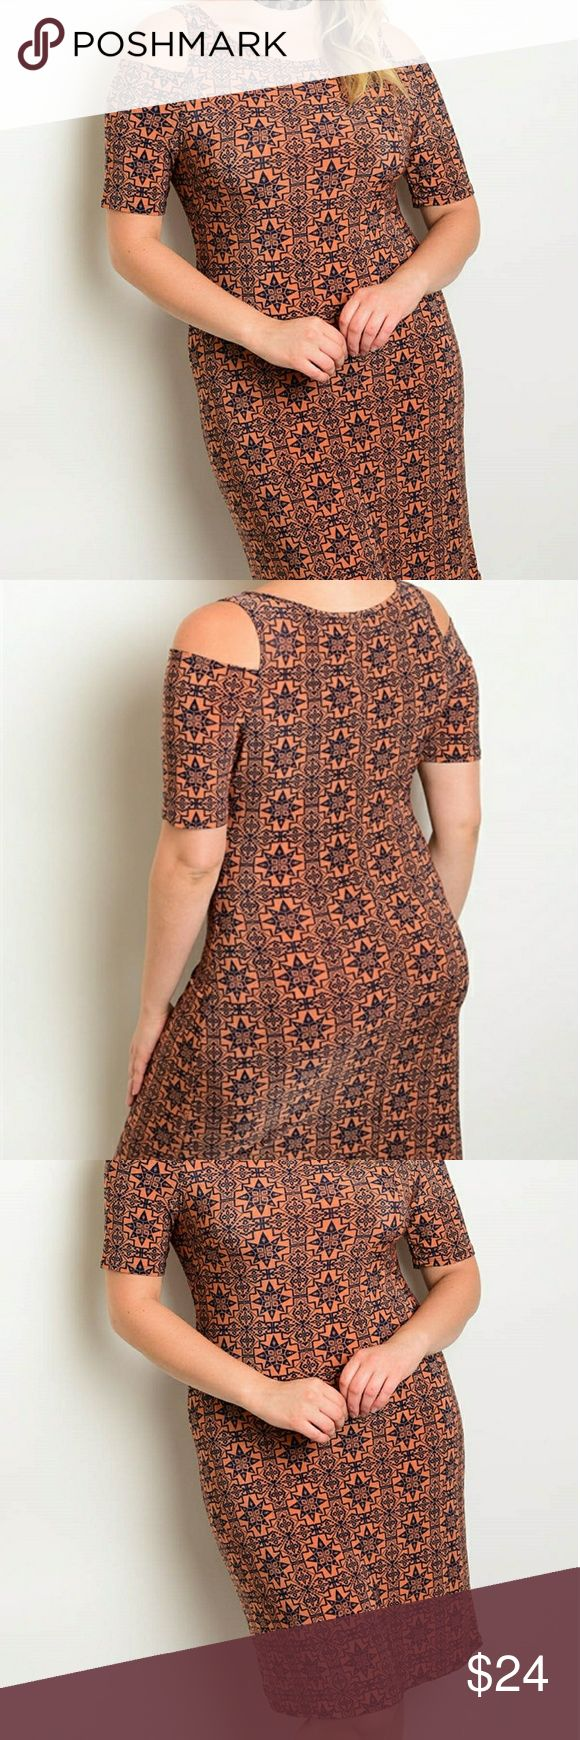 Plus size short sleeve mini dress Price will be $24  94% polyester 6% spandex  Plus size short sleeve open shoulder printed mini dress.  1x - 18 inches underarm to underarm 29 inches underarm to hem 2x - 19 inches underarm to underarm 29 inches underarm to hem 3x - 20 inches underarm to underarm 29 inches underarm to hem Dresses